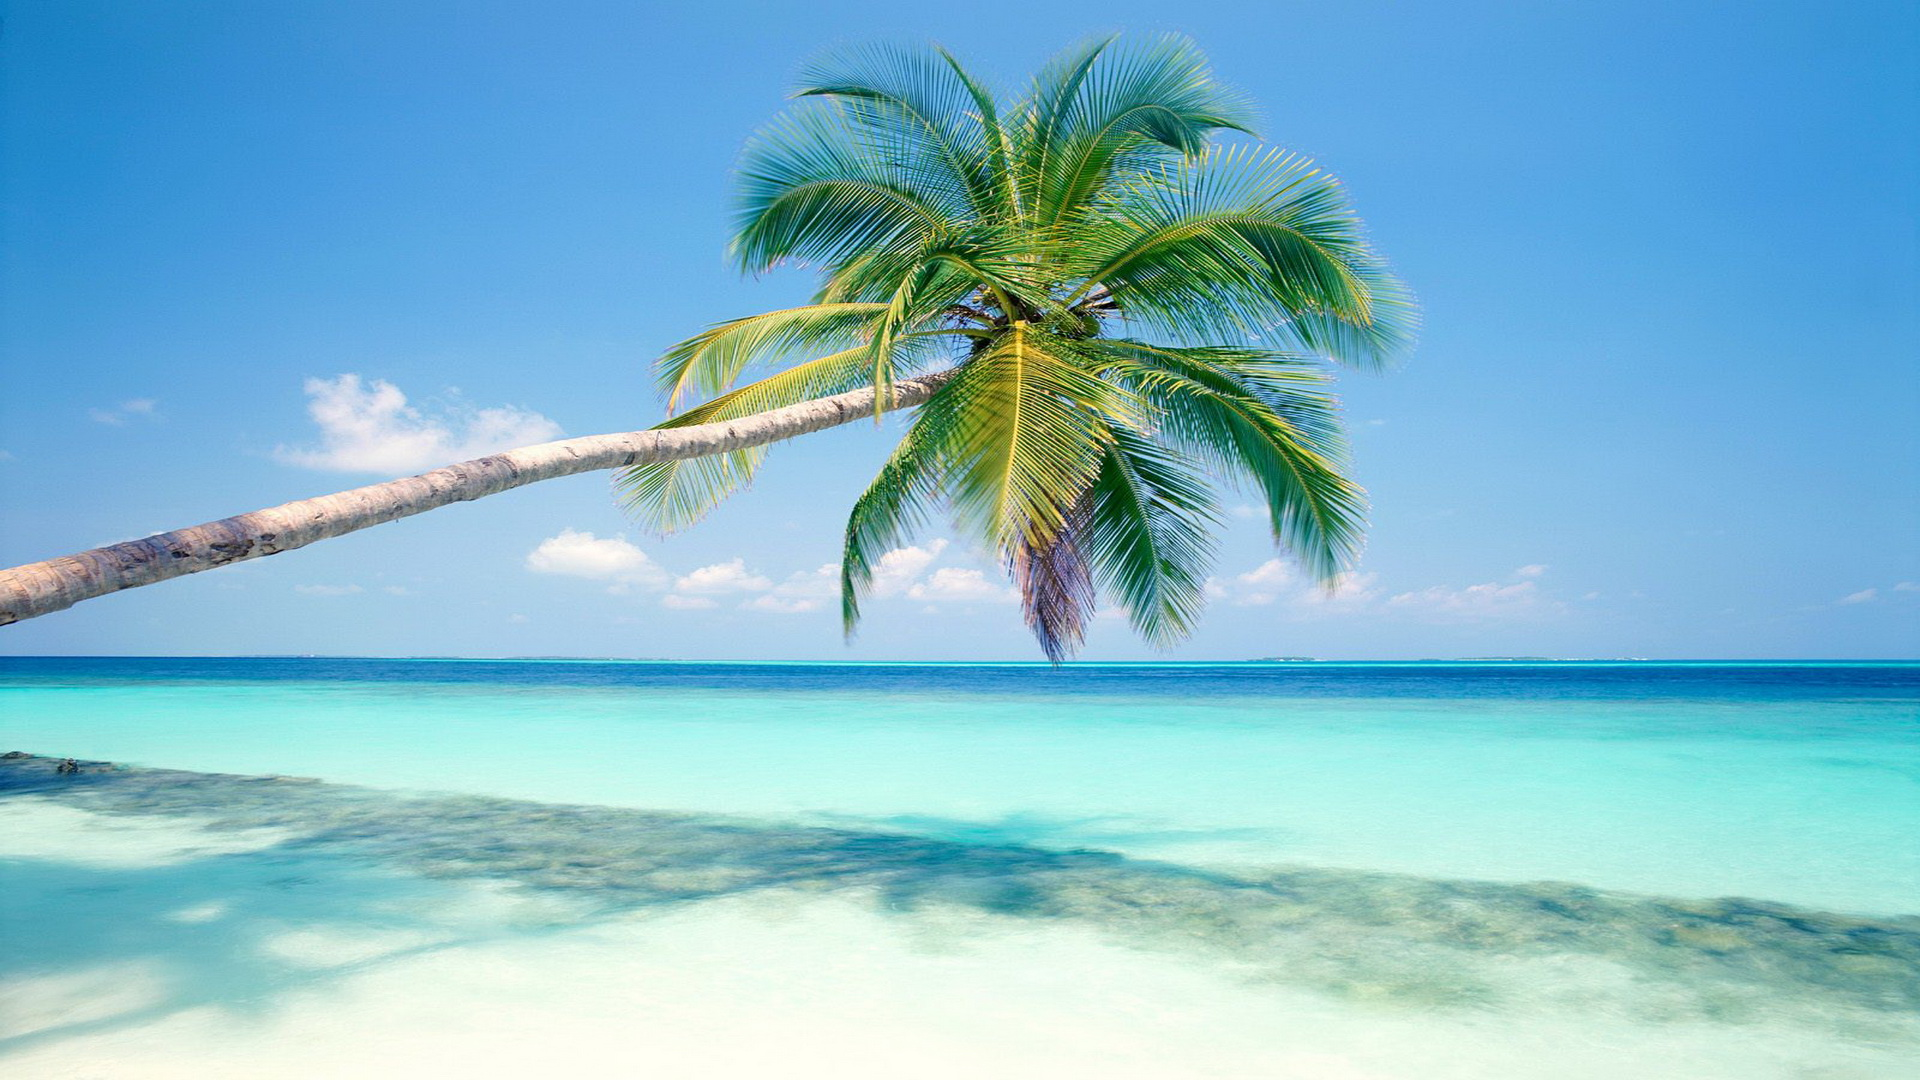 Top Tropical Island Desktop Wallpapers 1920x1080